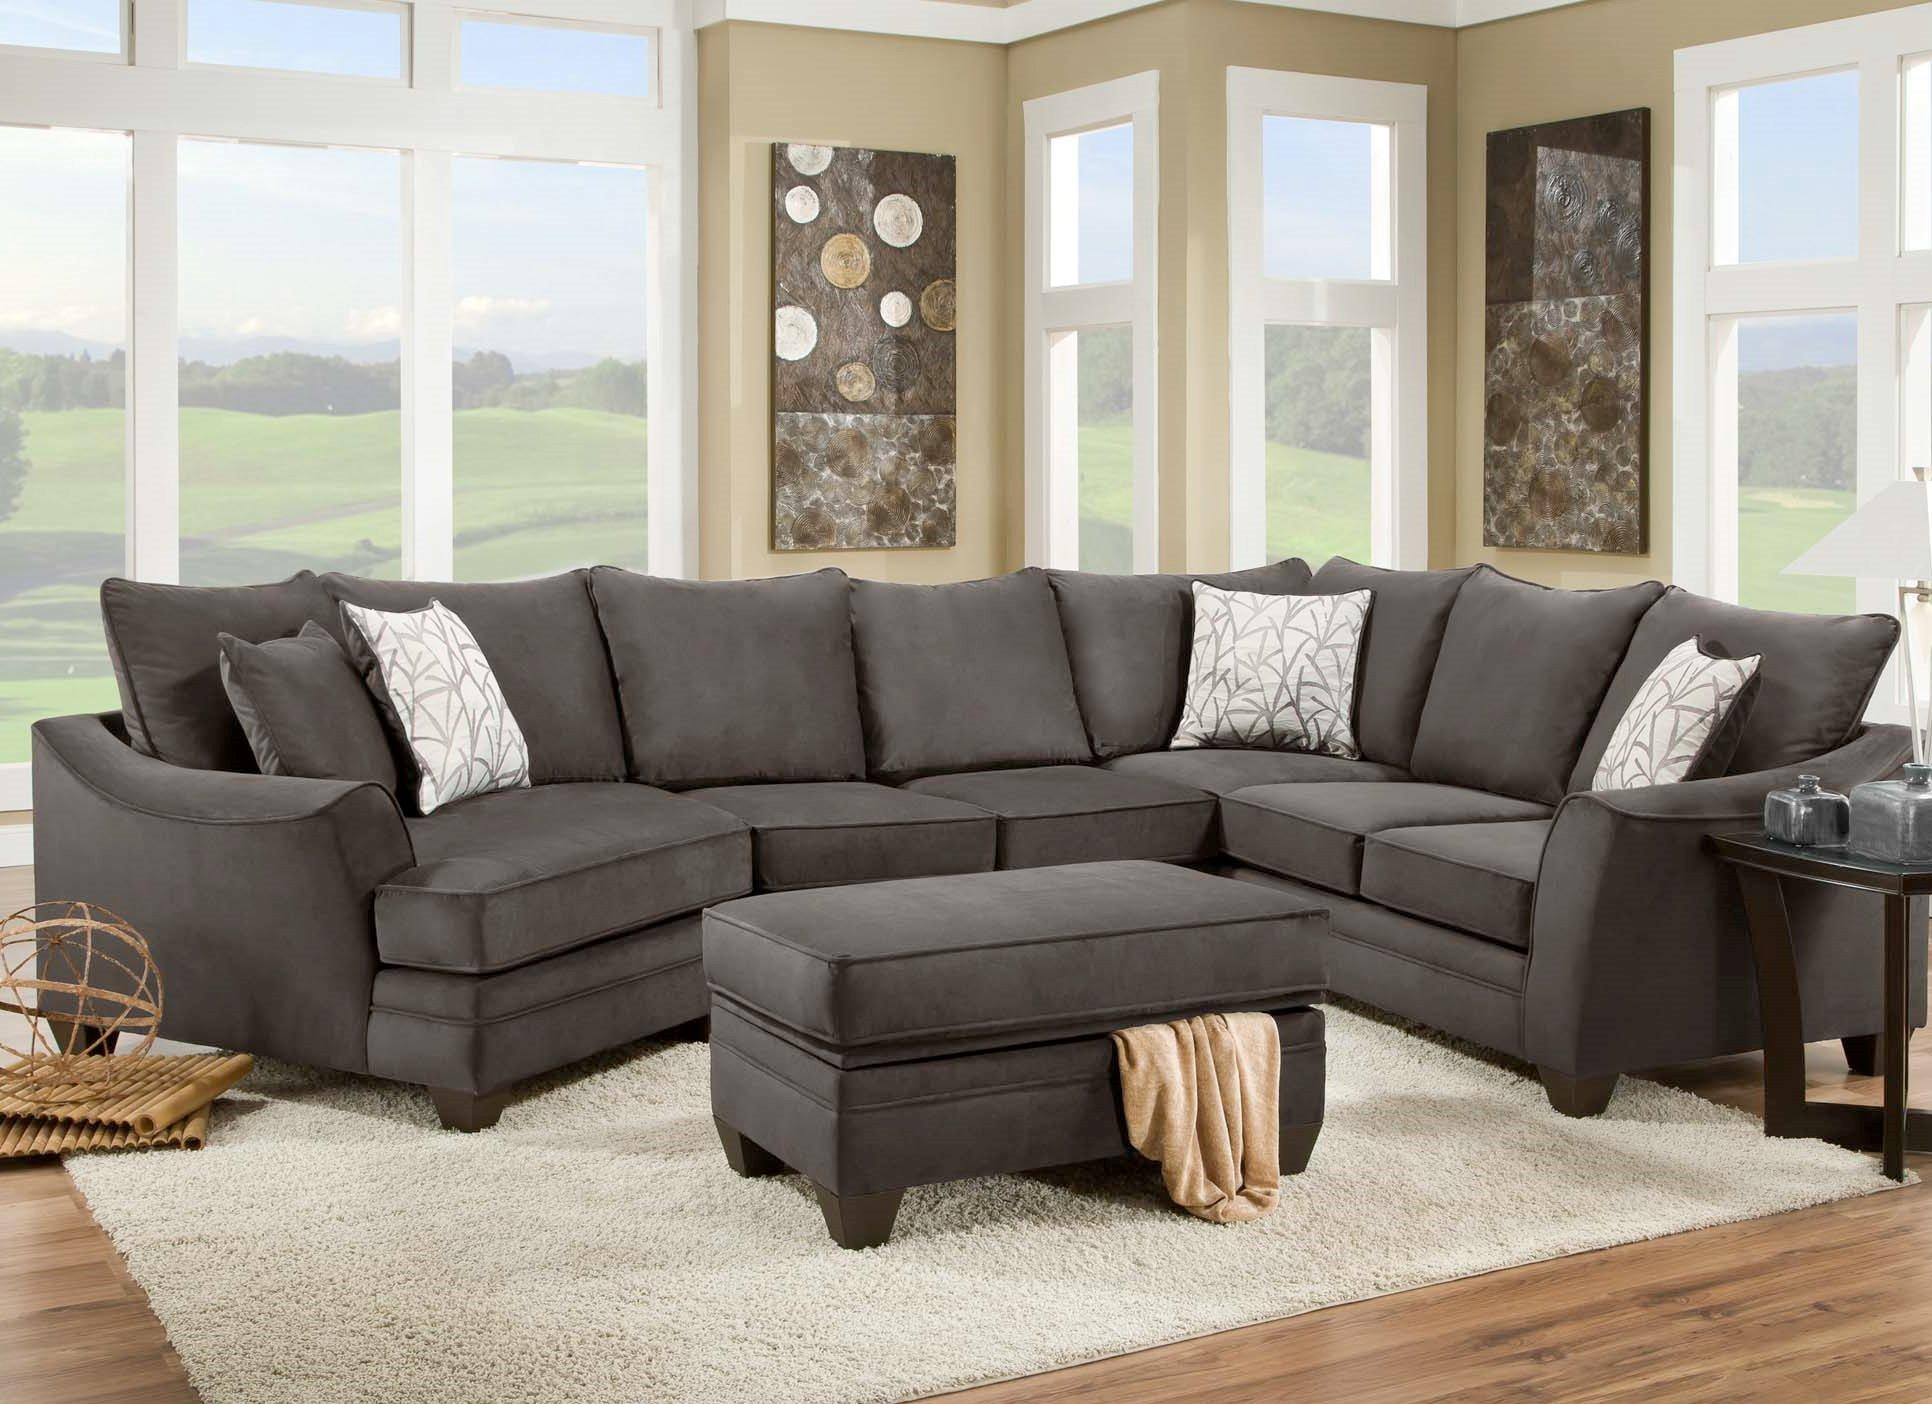 American furniture 3810 sectional sofa that seats 5 with for Furniture of america furniture